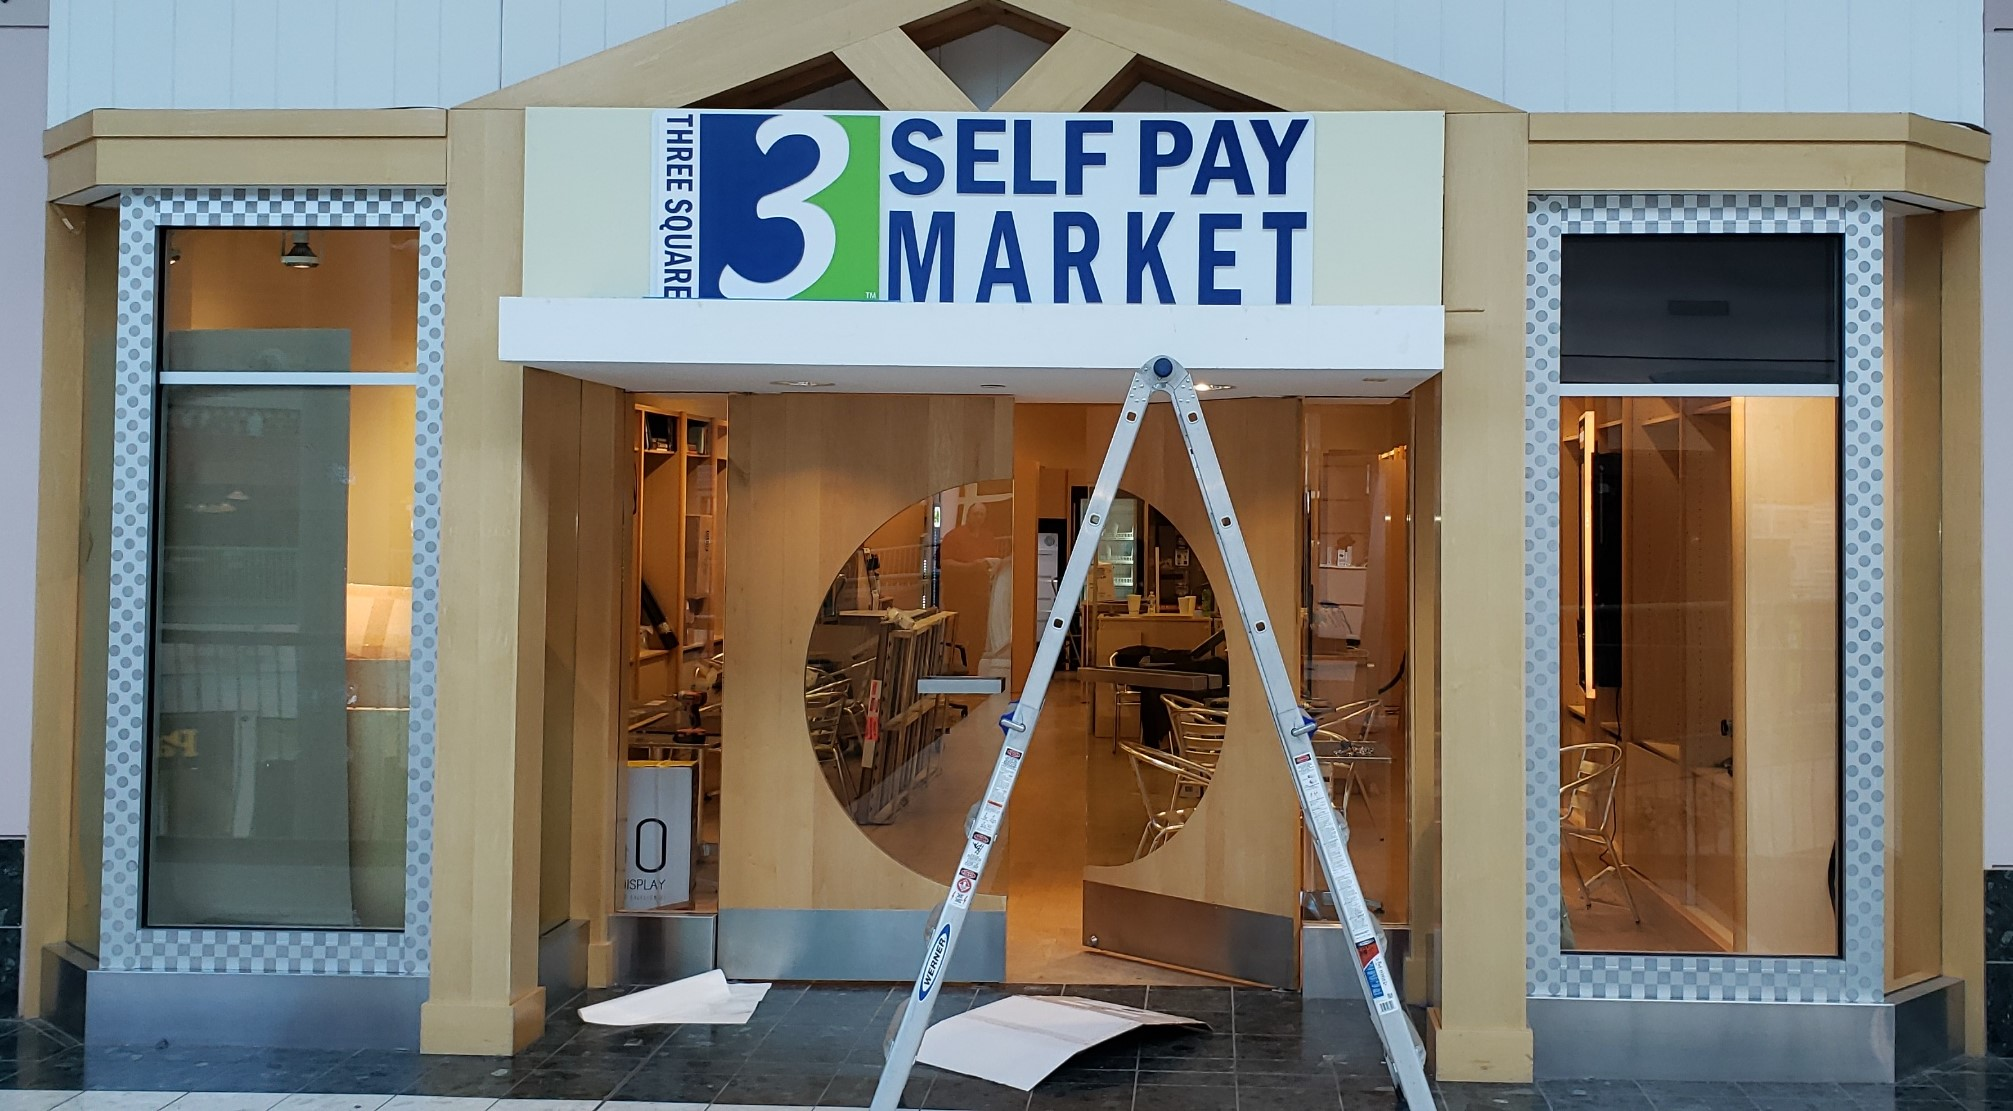 The newest 32M Self Pay Market getting set to open in Ohio on April 4, 2019.